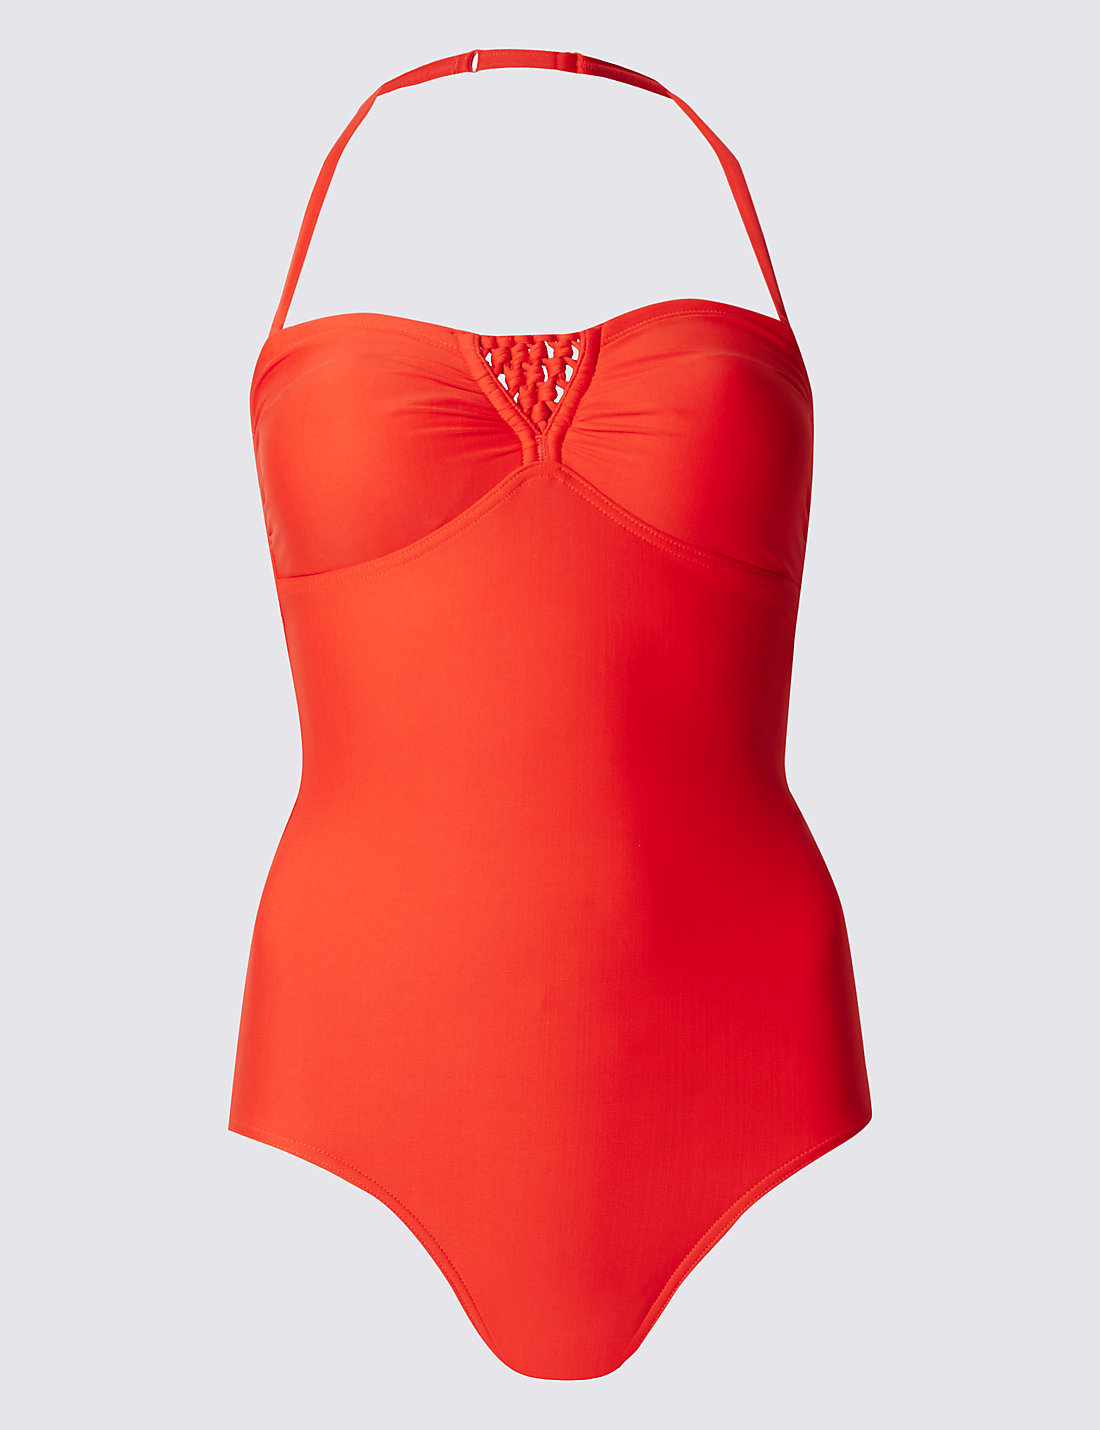 The best tummy control swimsuits